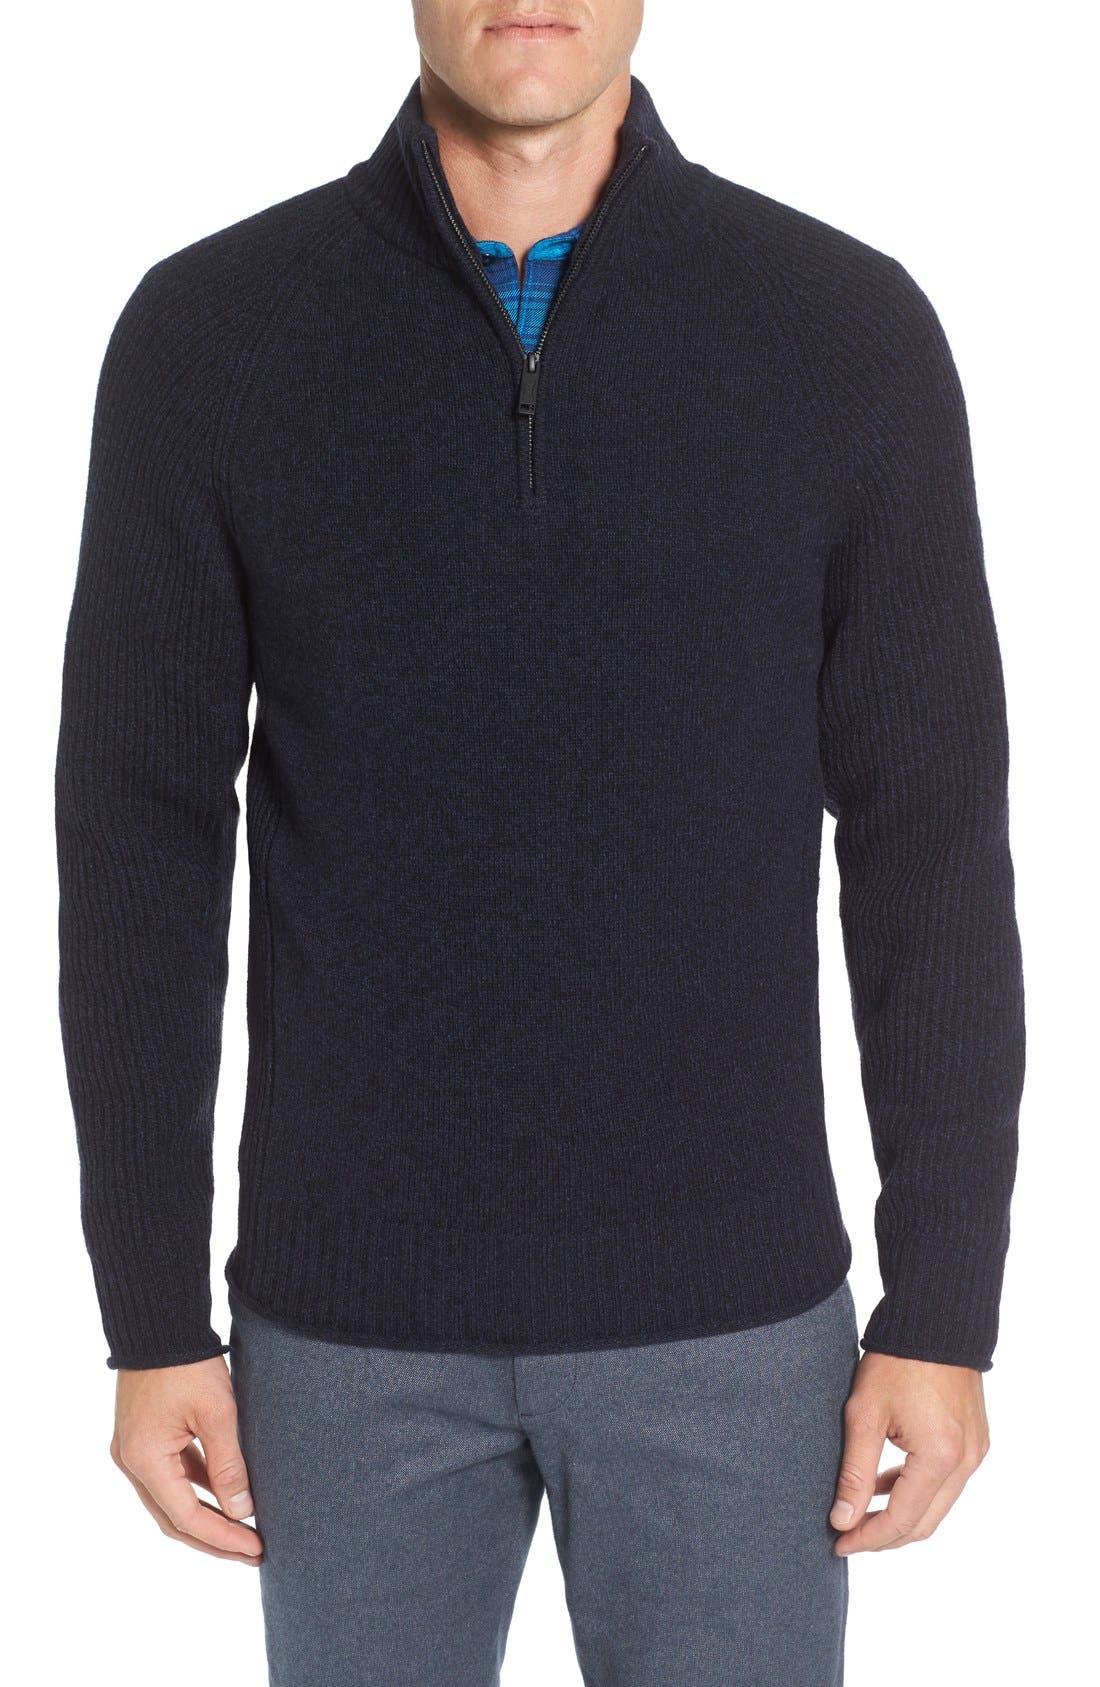 Stredwick Lambswool Sweater,                         Main,                         color, Midnight